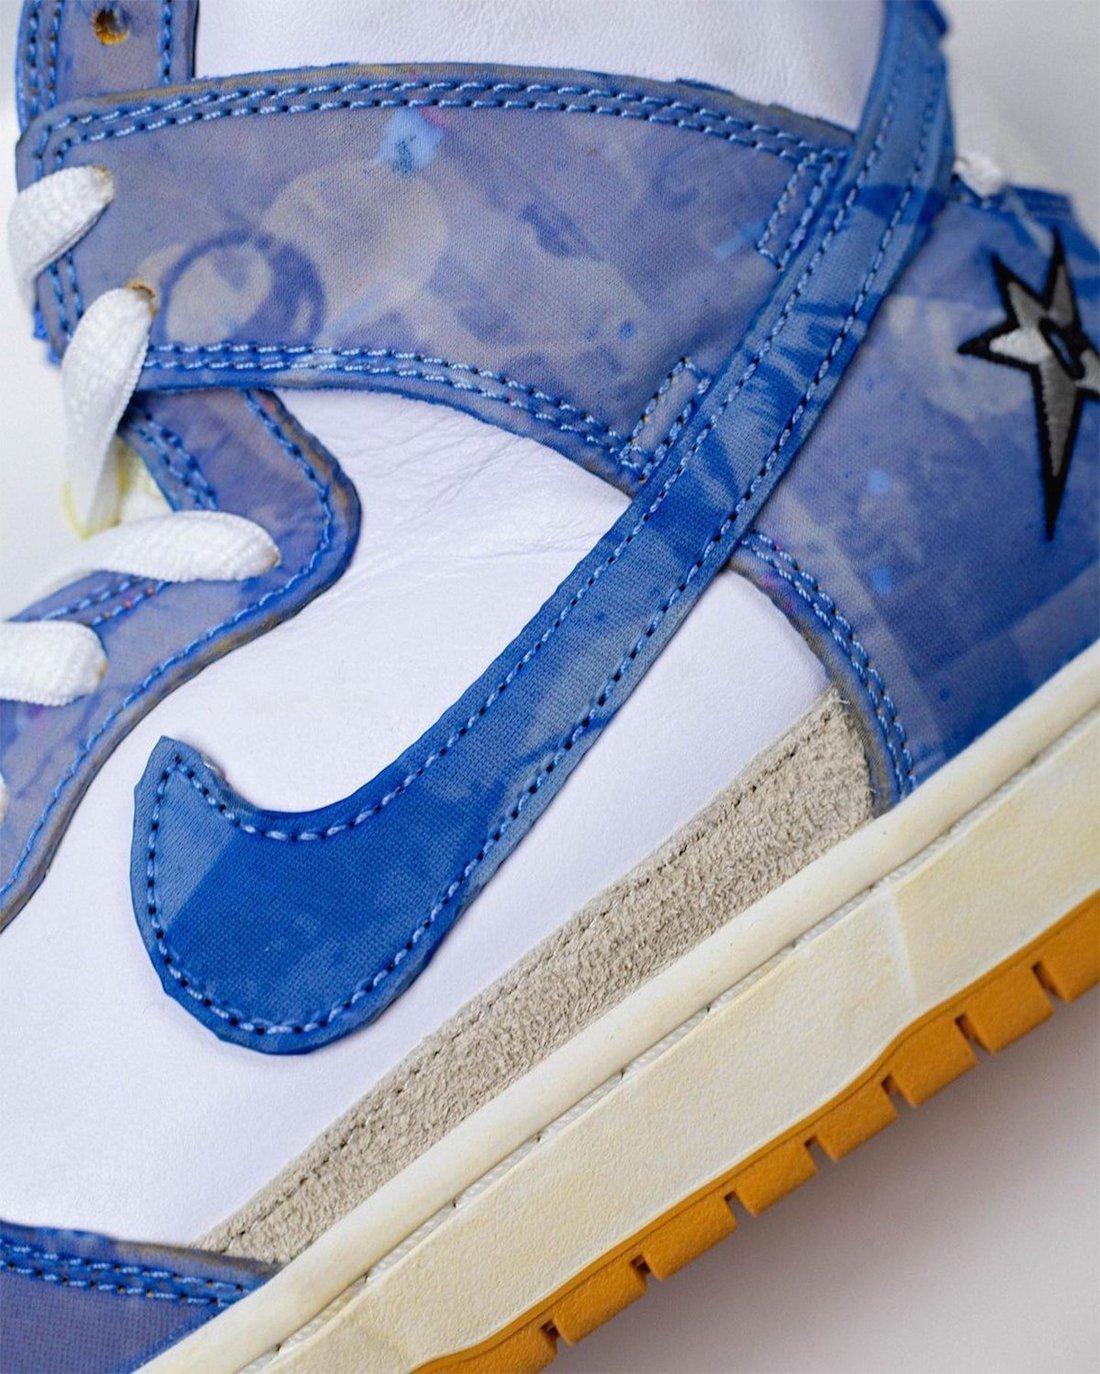 carpet-company-nike-sb-dunk-high-cv1677-100-release-2021